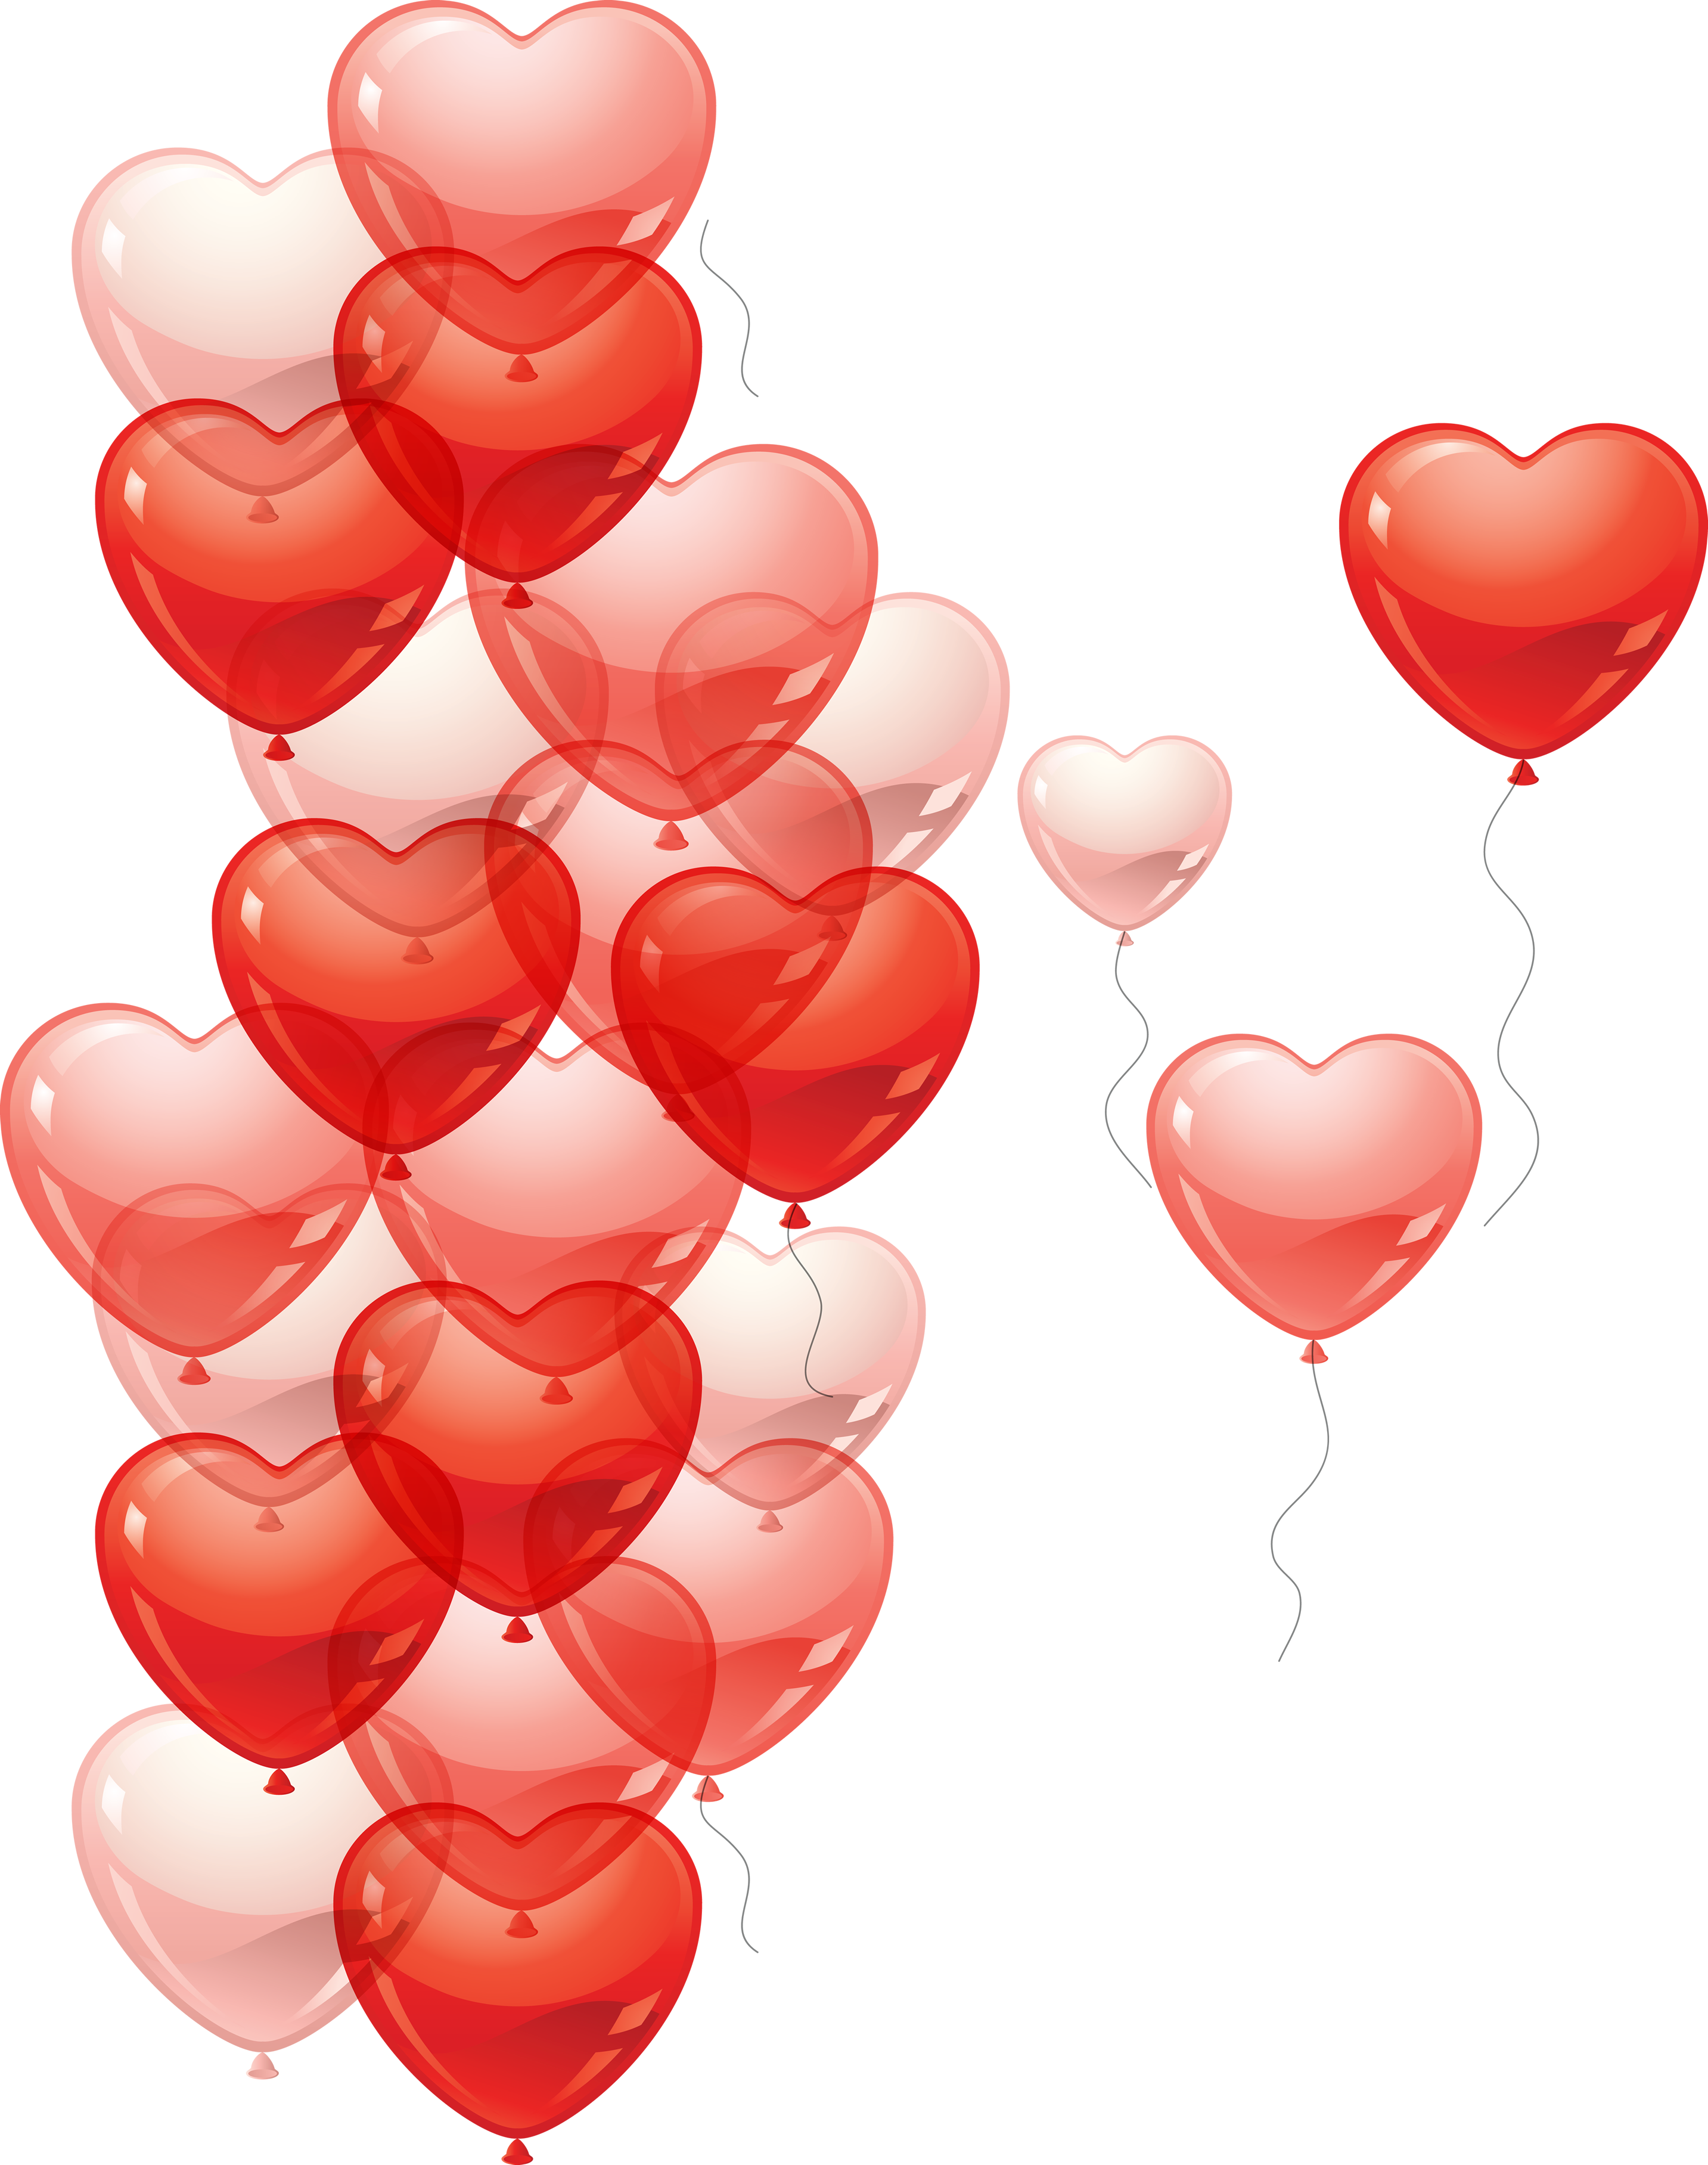 Gifts Clipart Balloon Gifts Balloon Transparent Free For Download